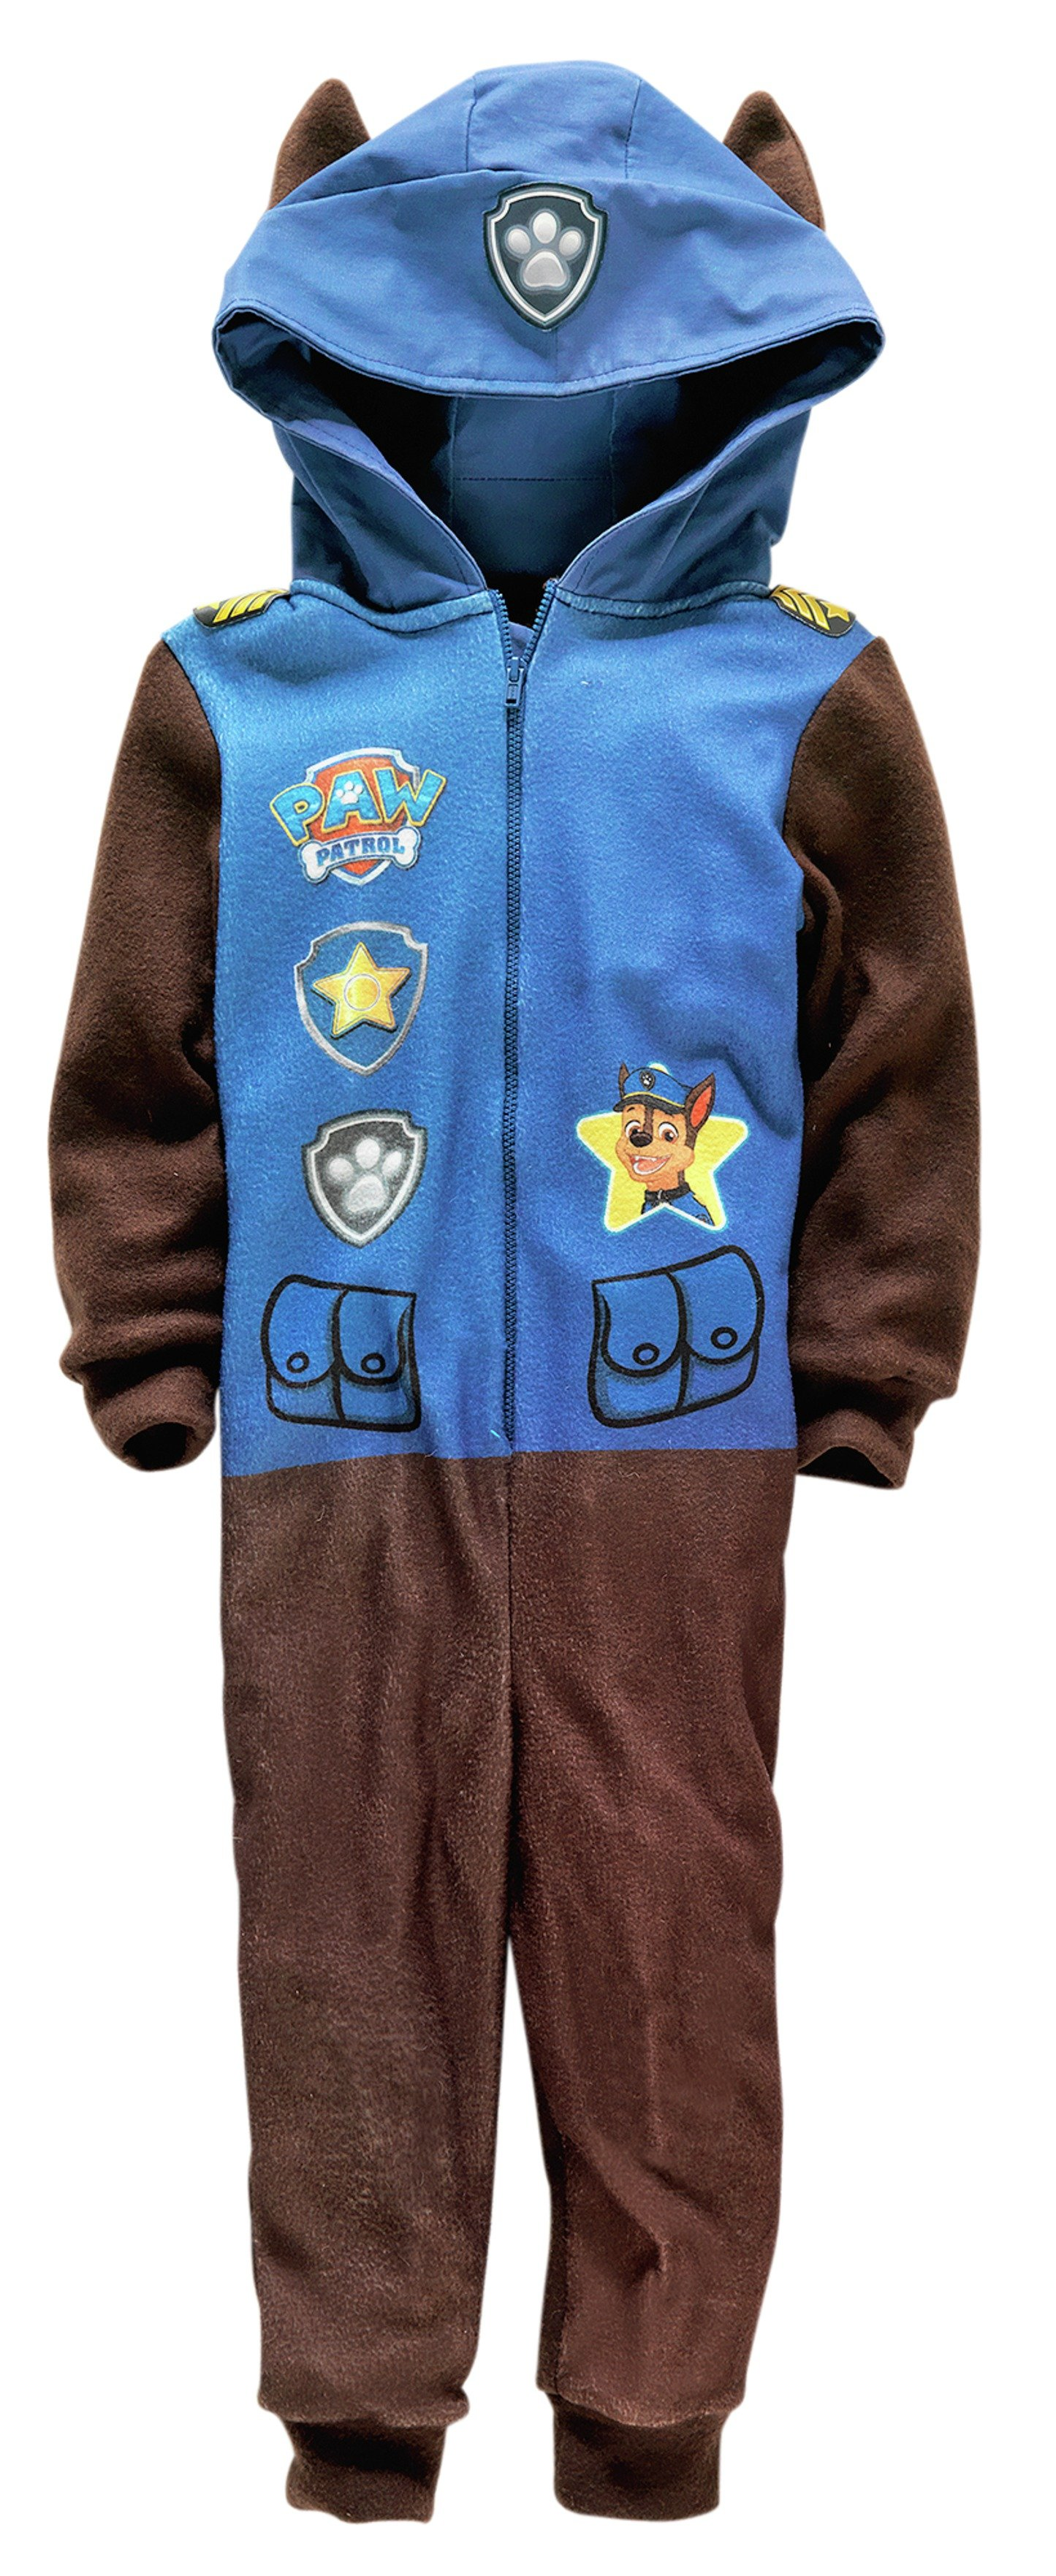 'Paw Patrol Novelty Onesie - 4-5 Years